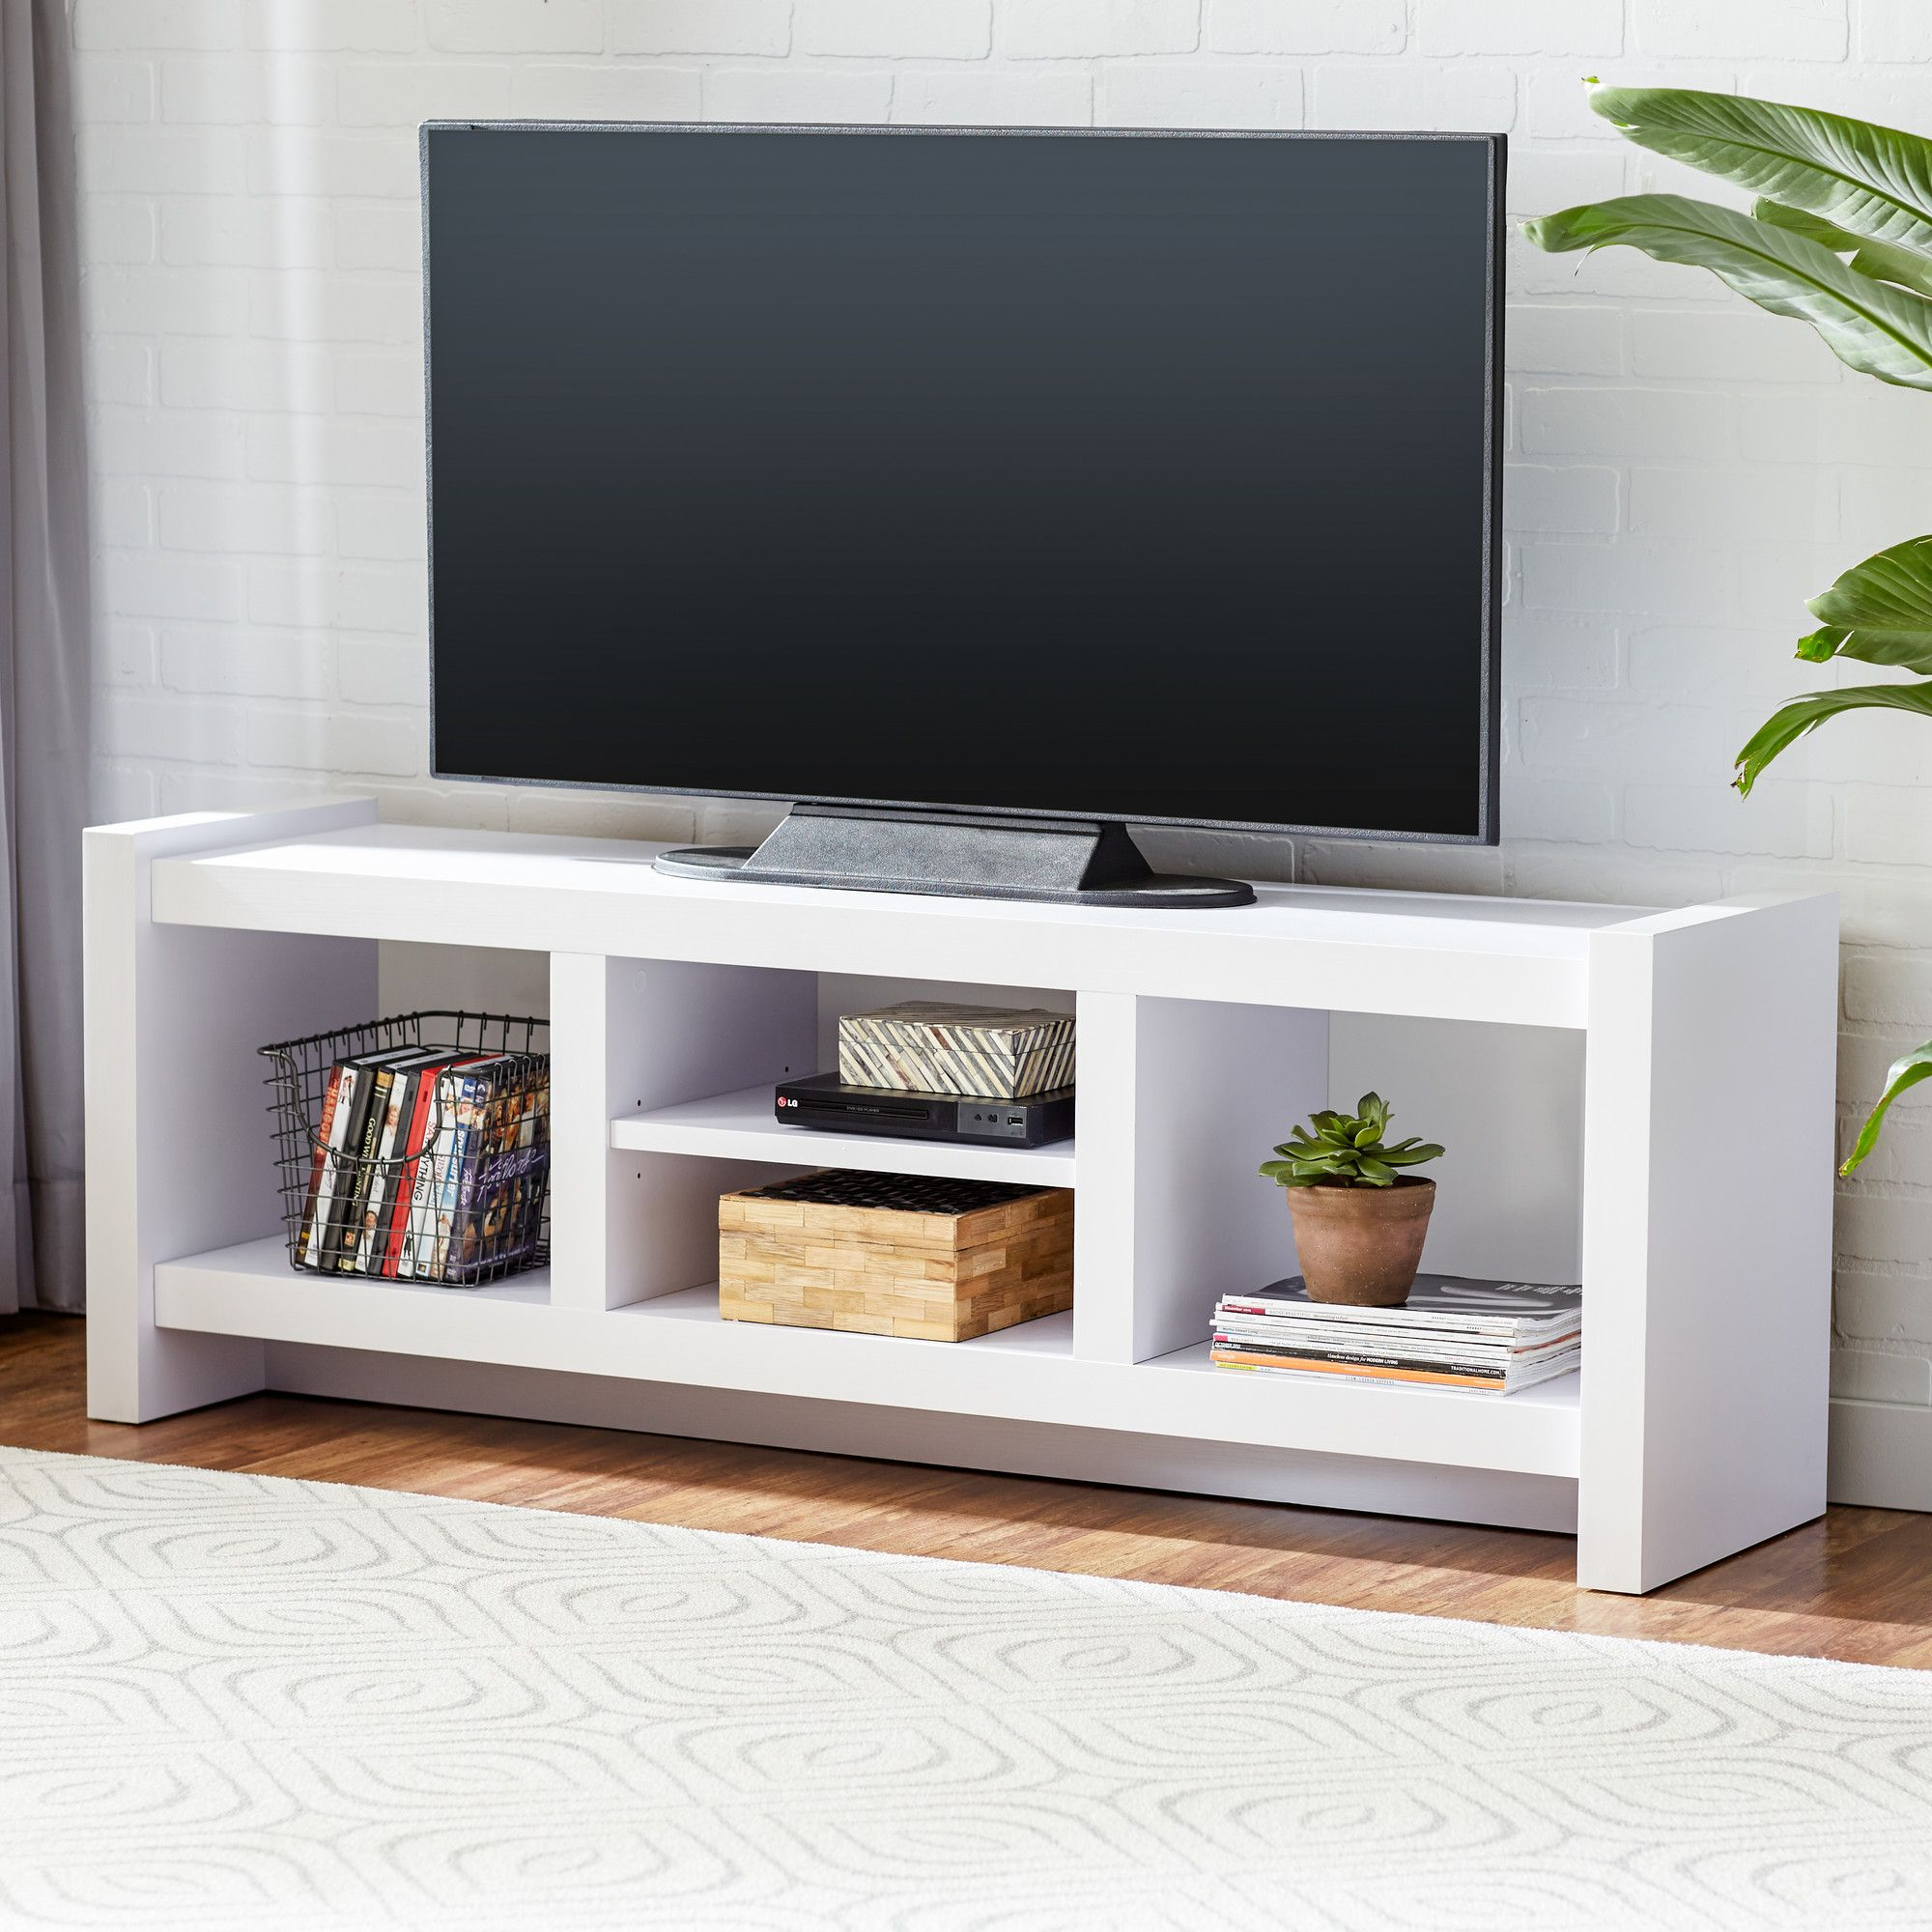 Dixon Media Console Cool Tv Stands White Tv Stands Tv Stand Designs